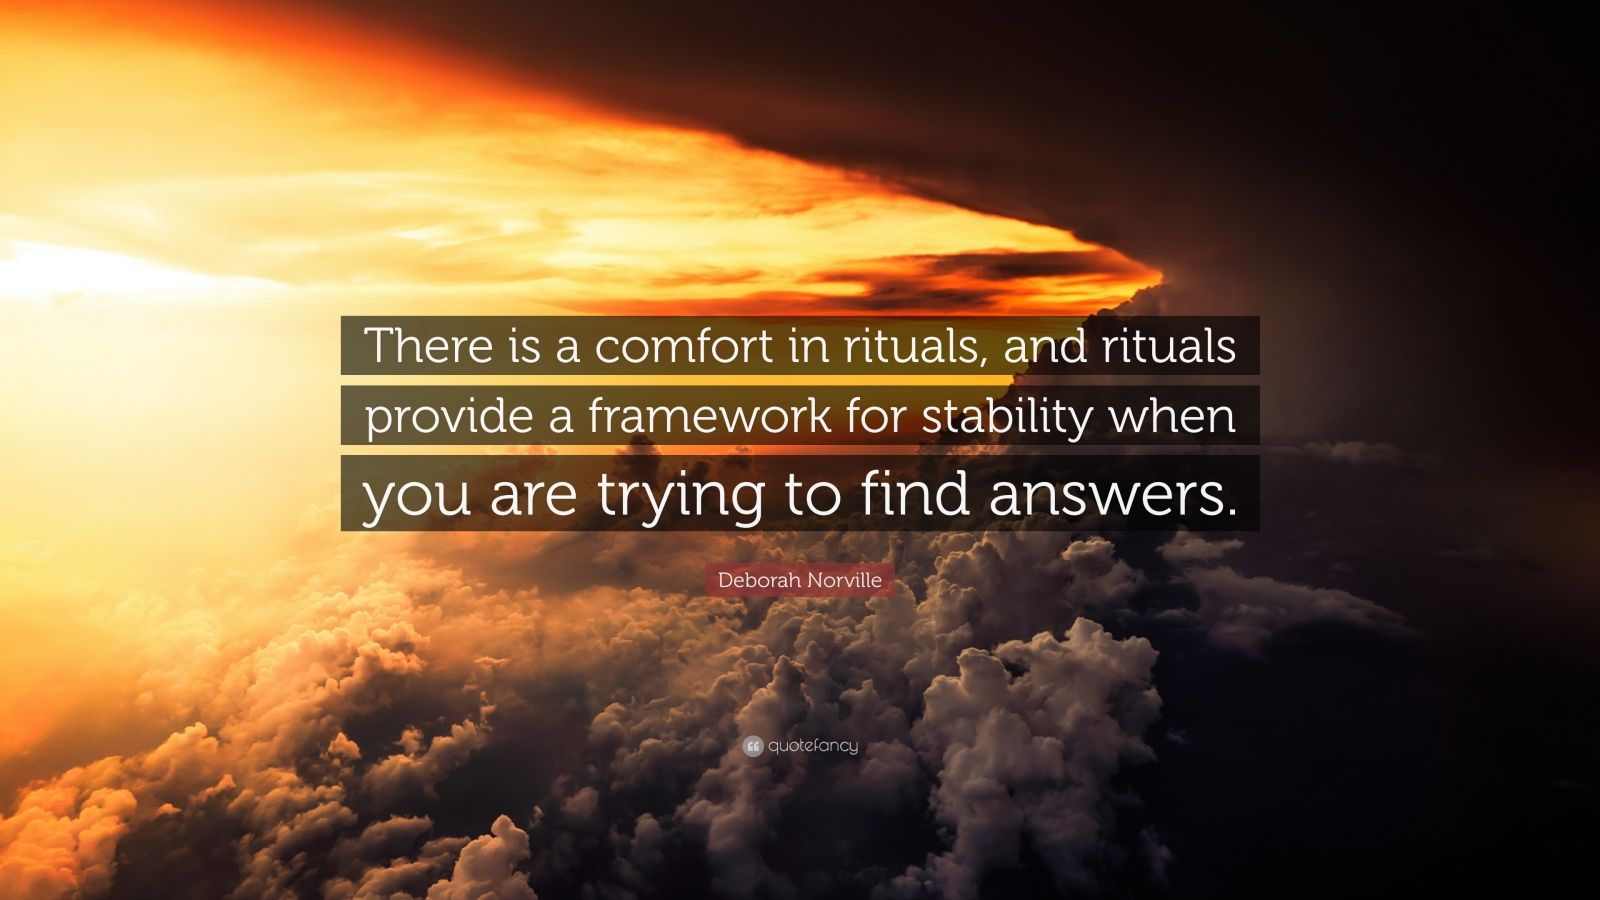 """Deborah Norville Quote: """"There is a comfort in rituals, and rituals provide a framework for stability when you are trying to find answers."""""""